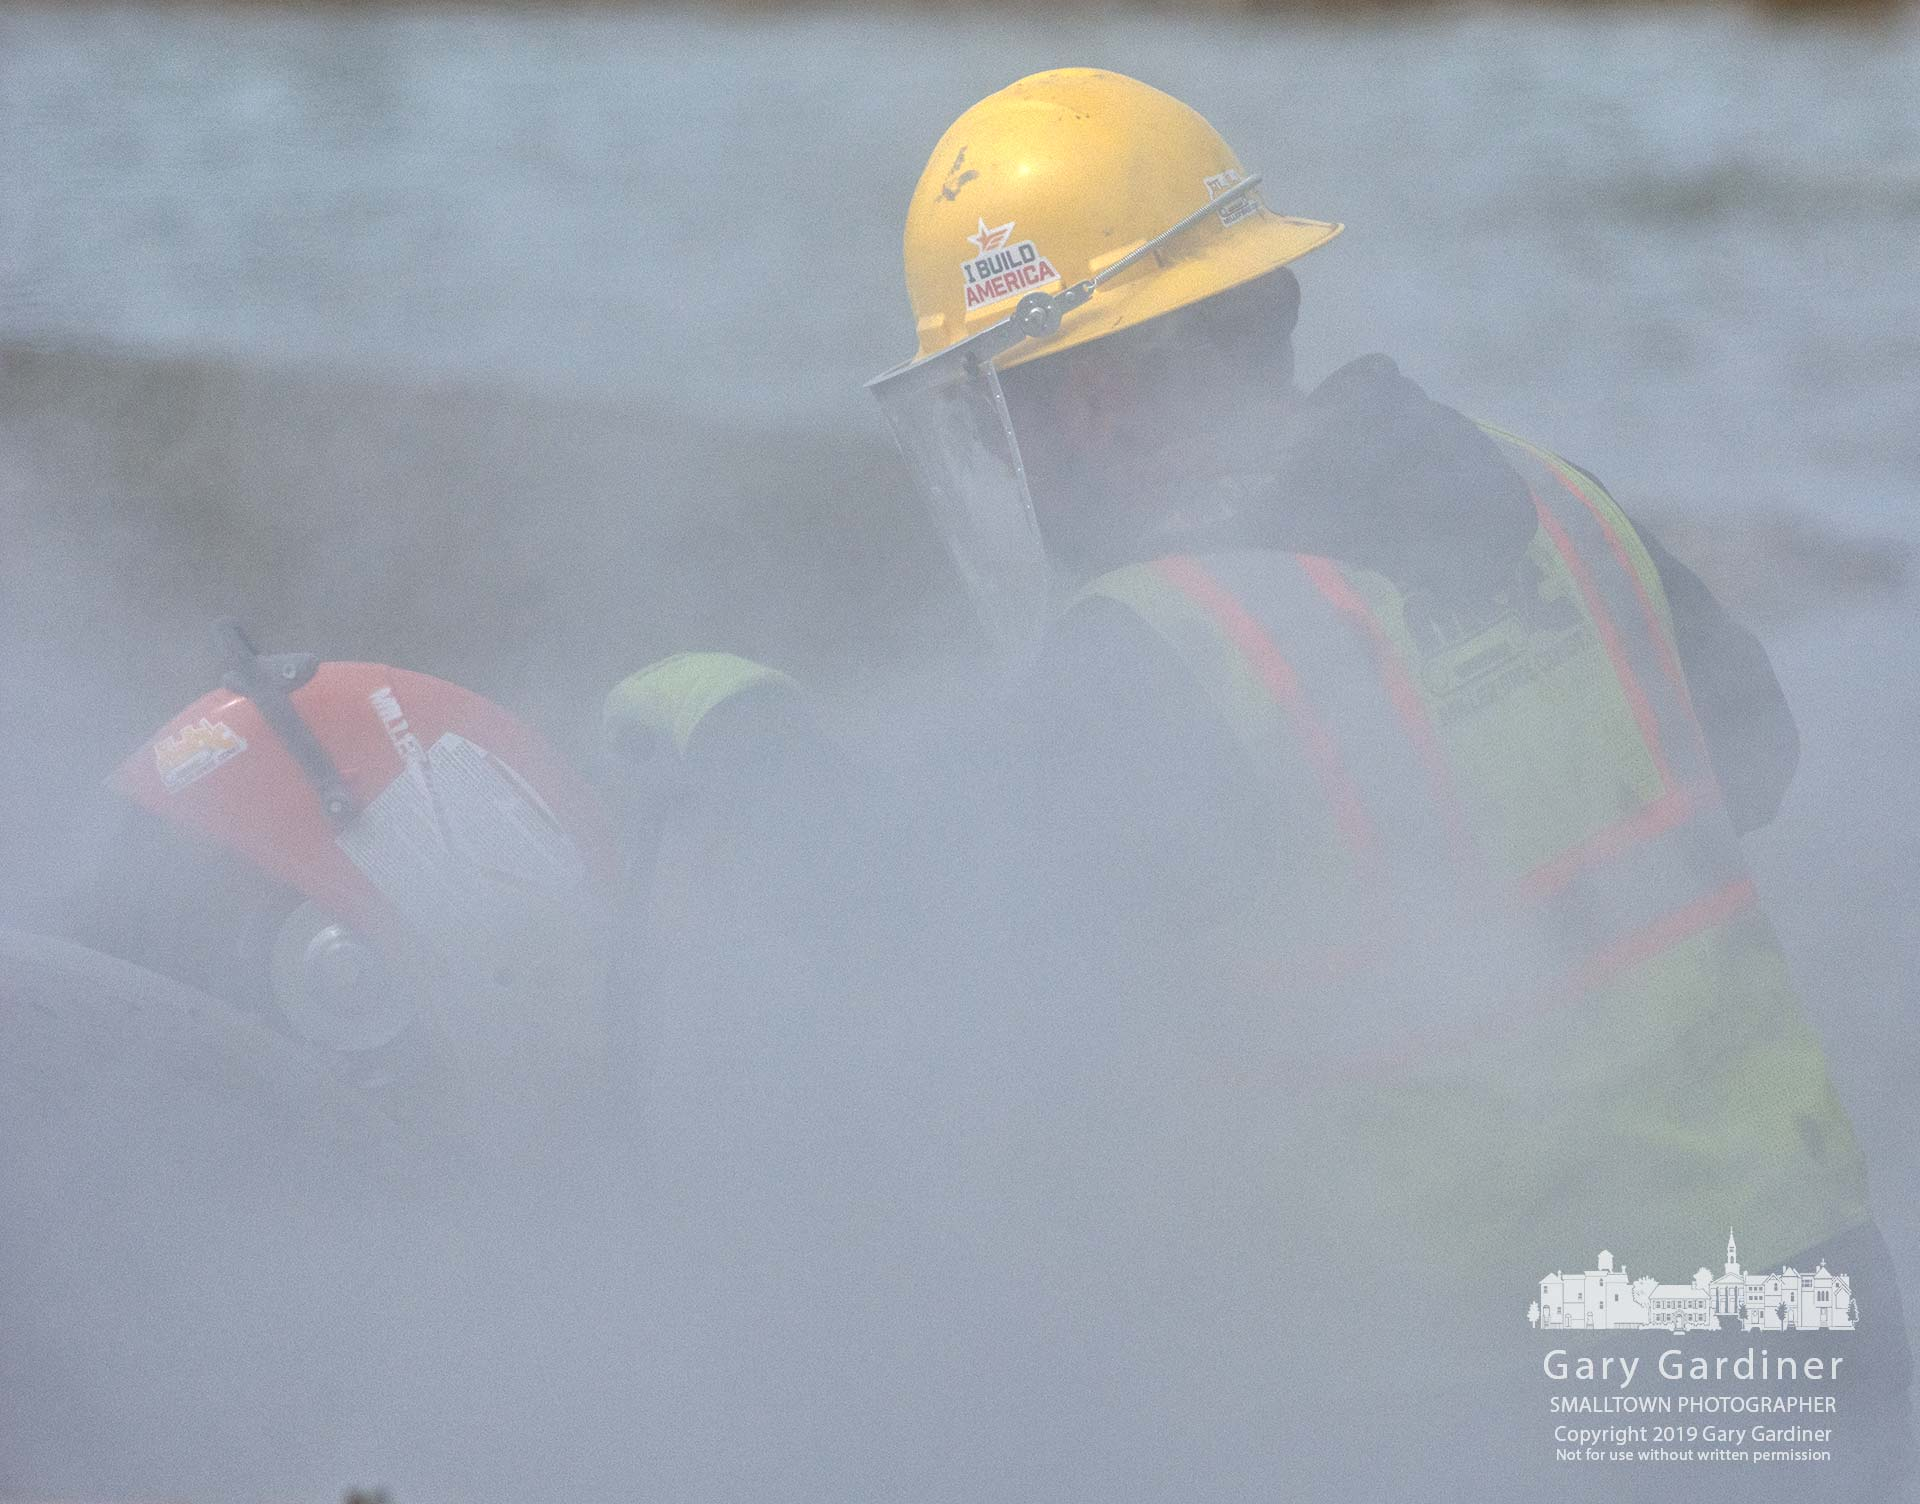 A construction worker is obscured by a cloud of concrete dust as he cuts a section of storm sewer pipe as the city extends Altair Parkway near the DHL building construction site. My Final Photo for March 11, 2019.